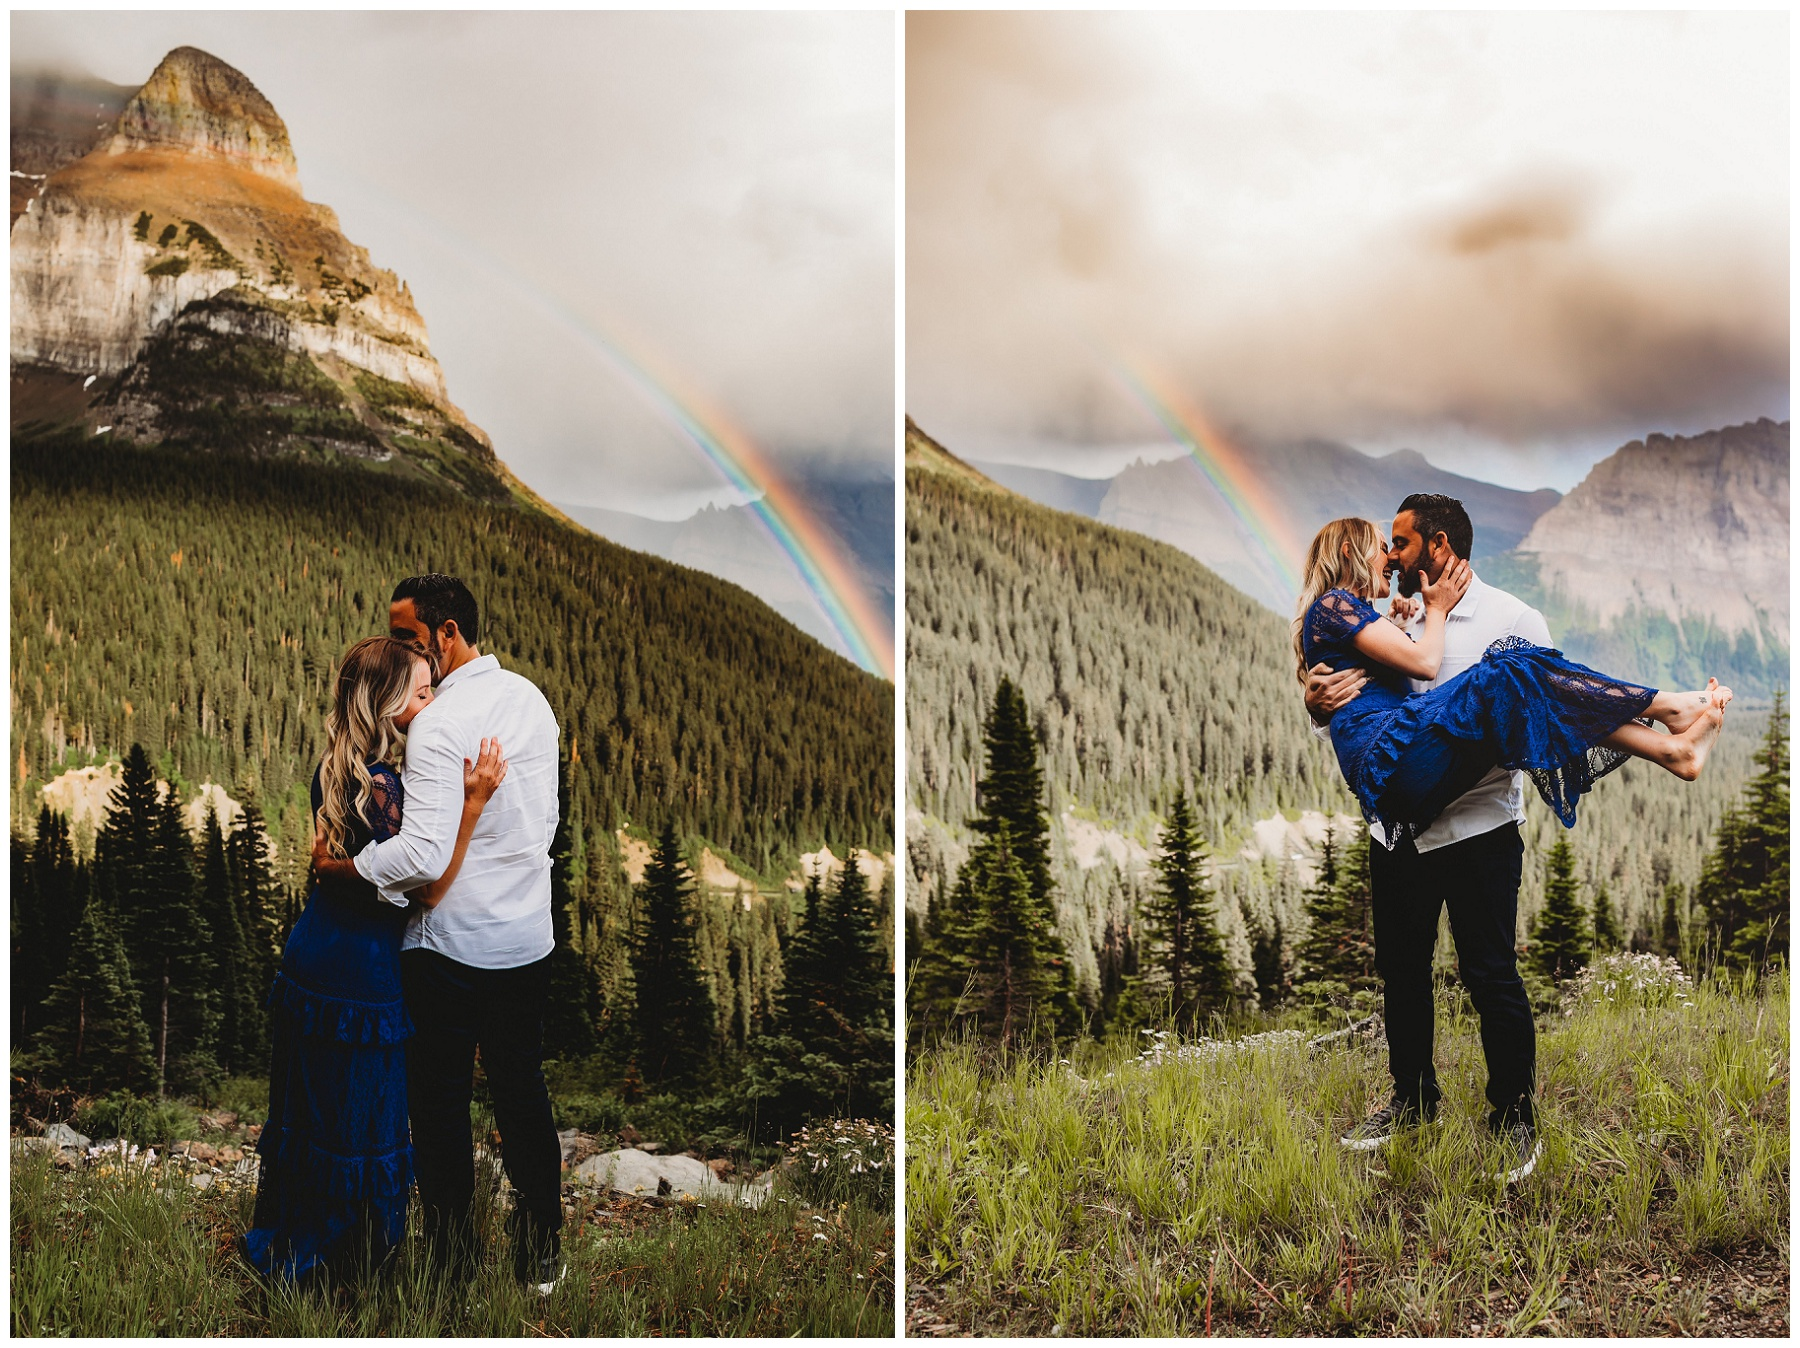 couple portraits by a rainbow in the mountains